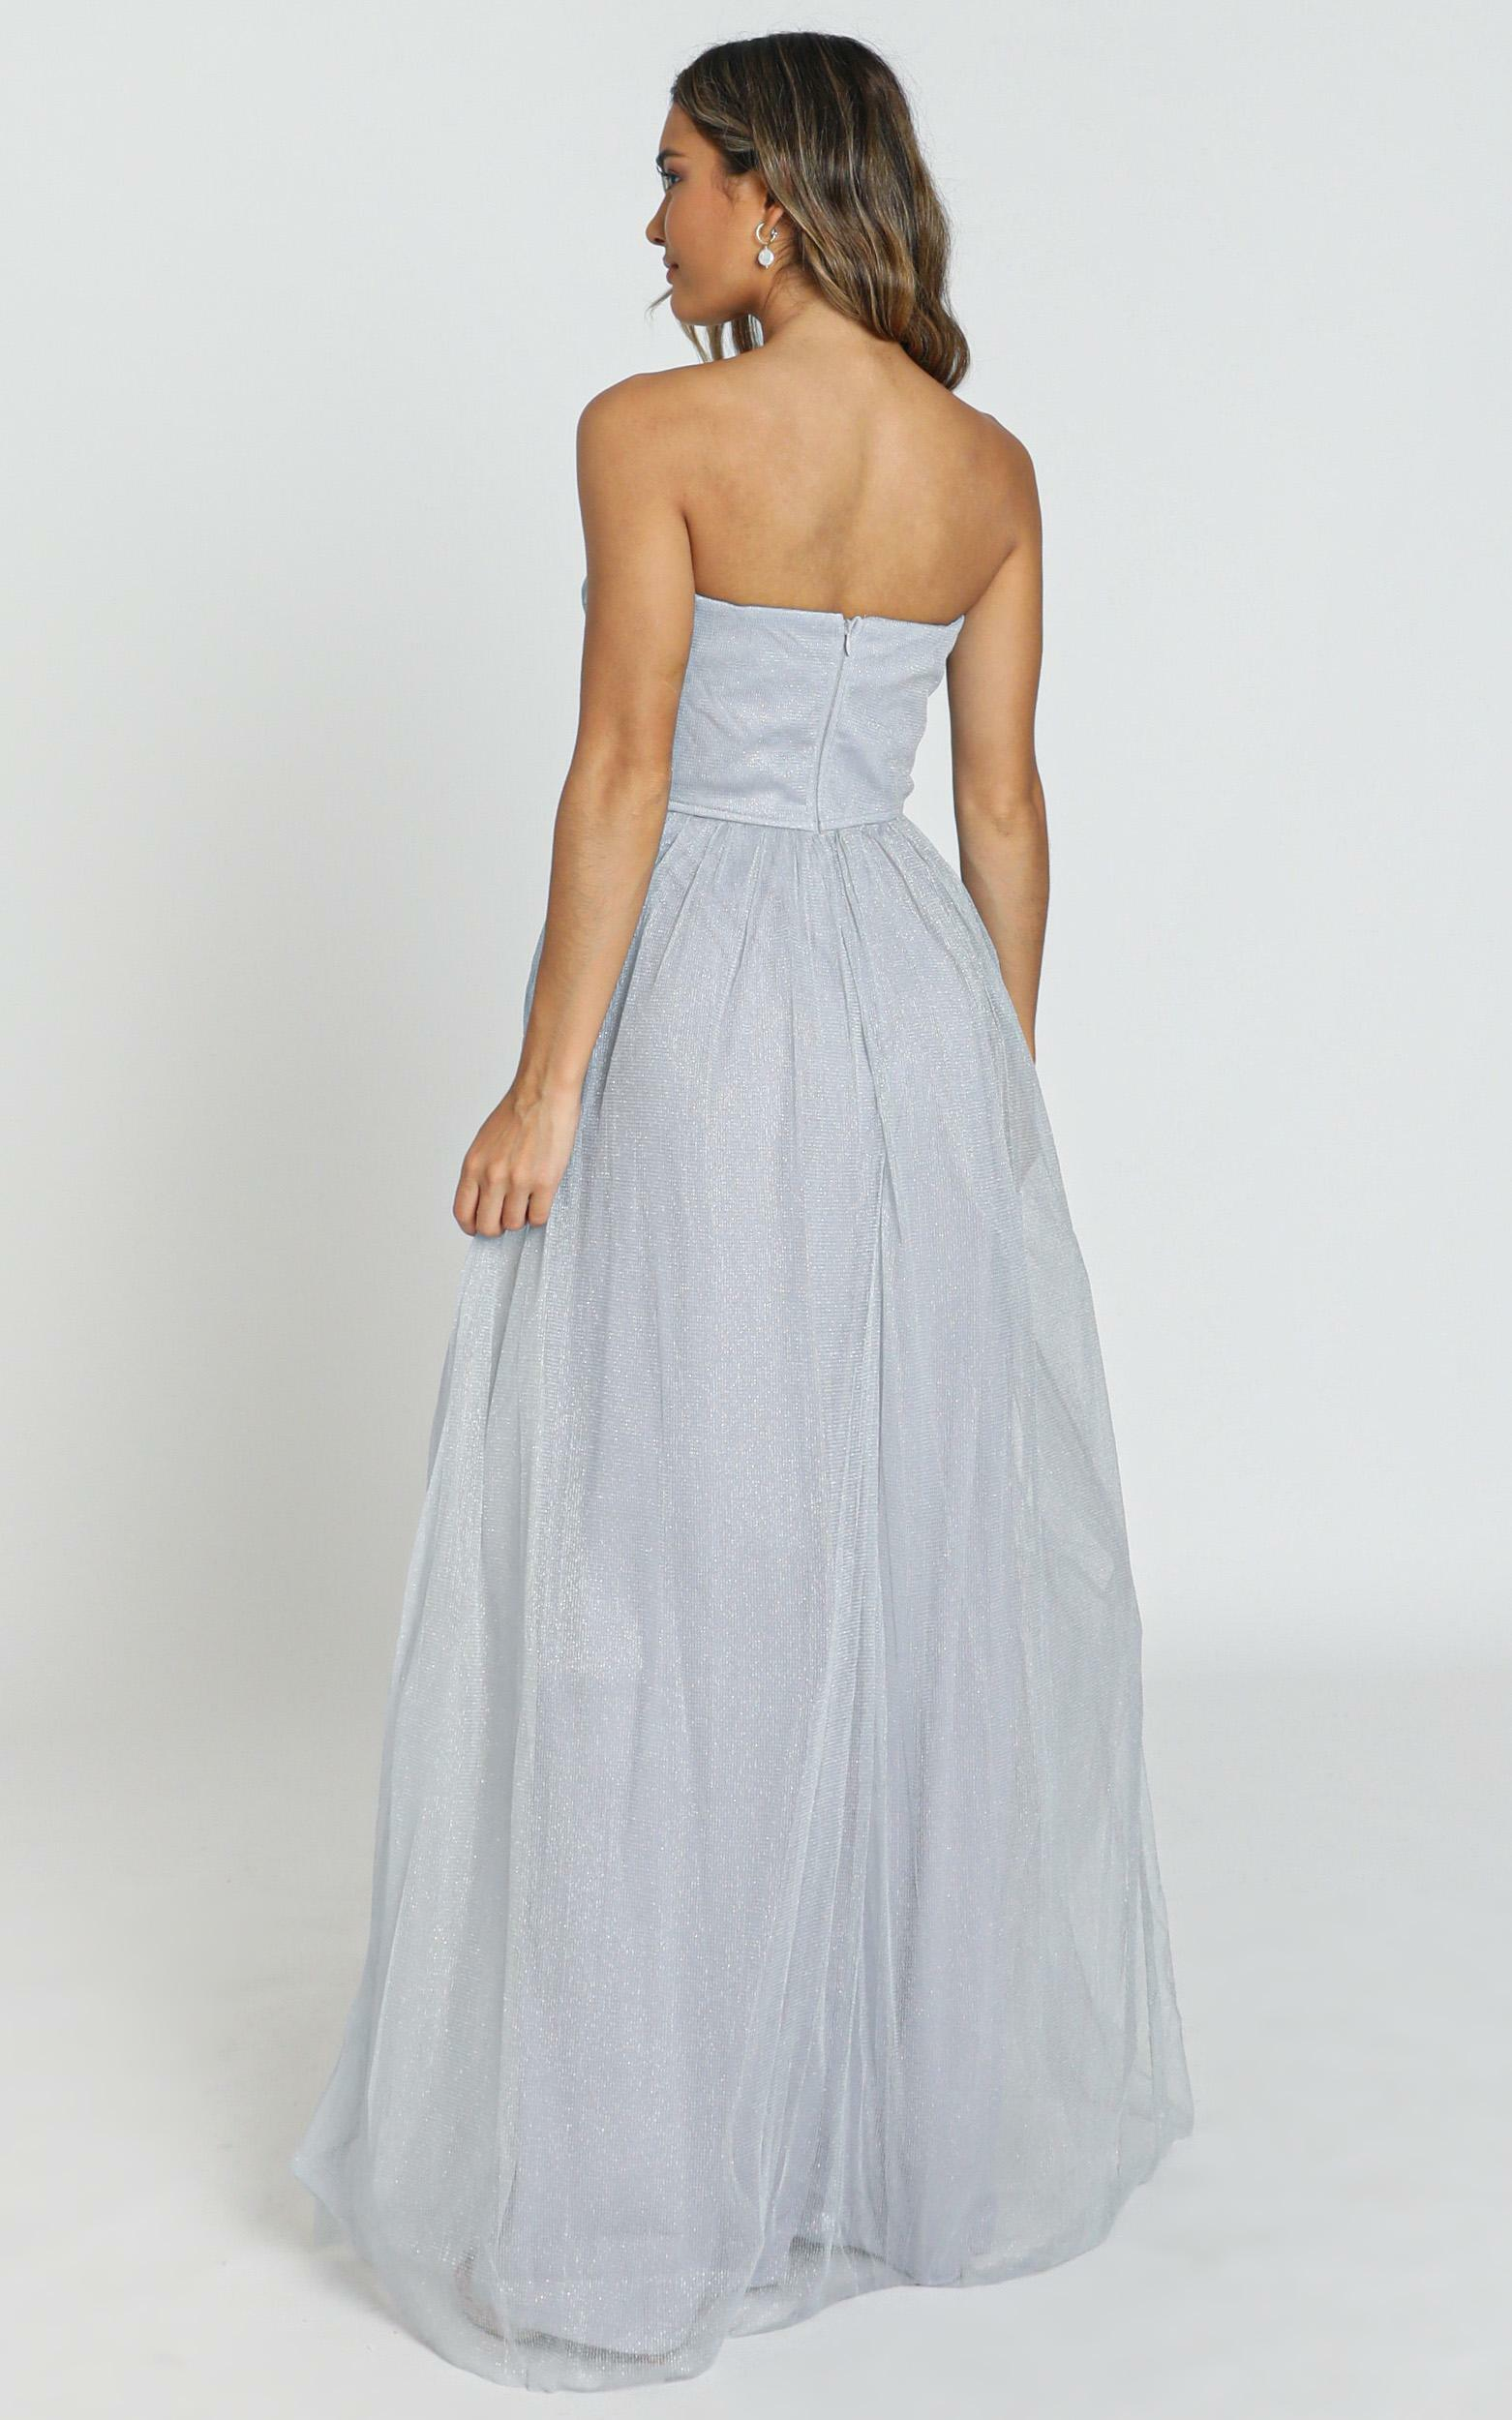 Can't Help It maxi dress in grey - 8 (S), Grey, hi-res image number null